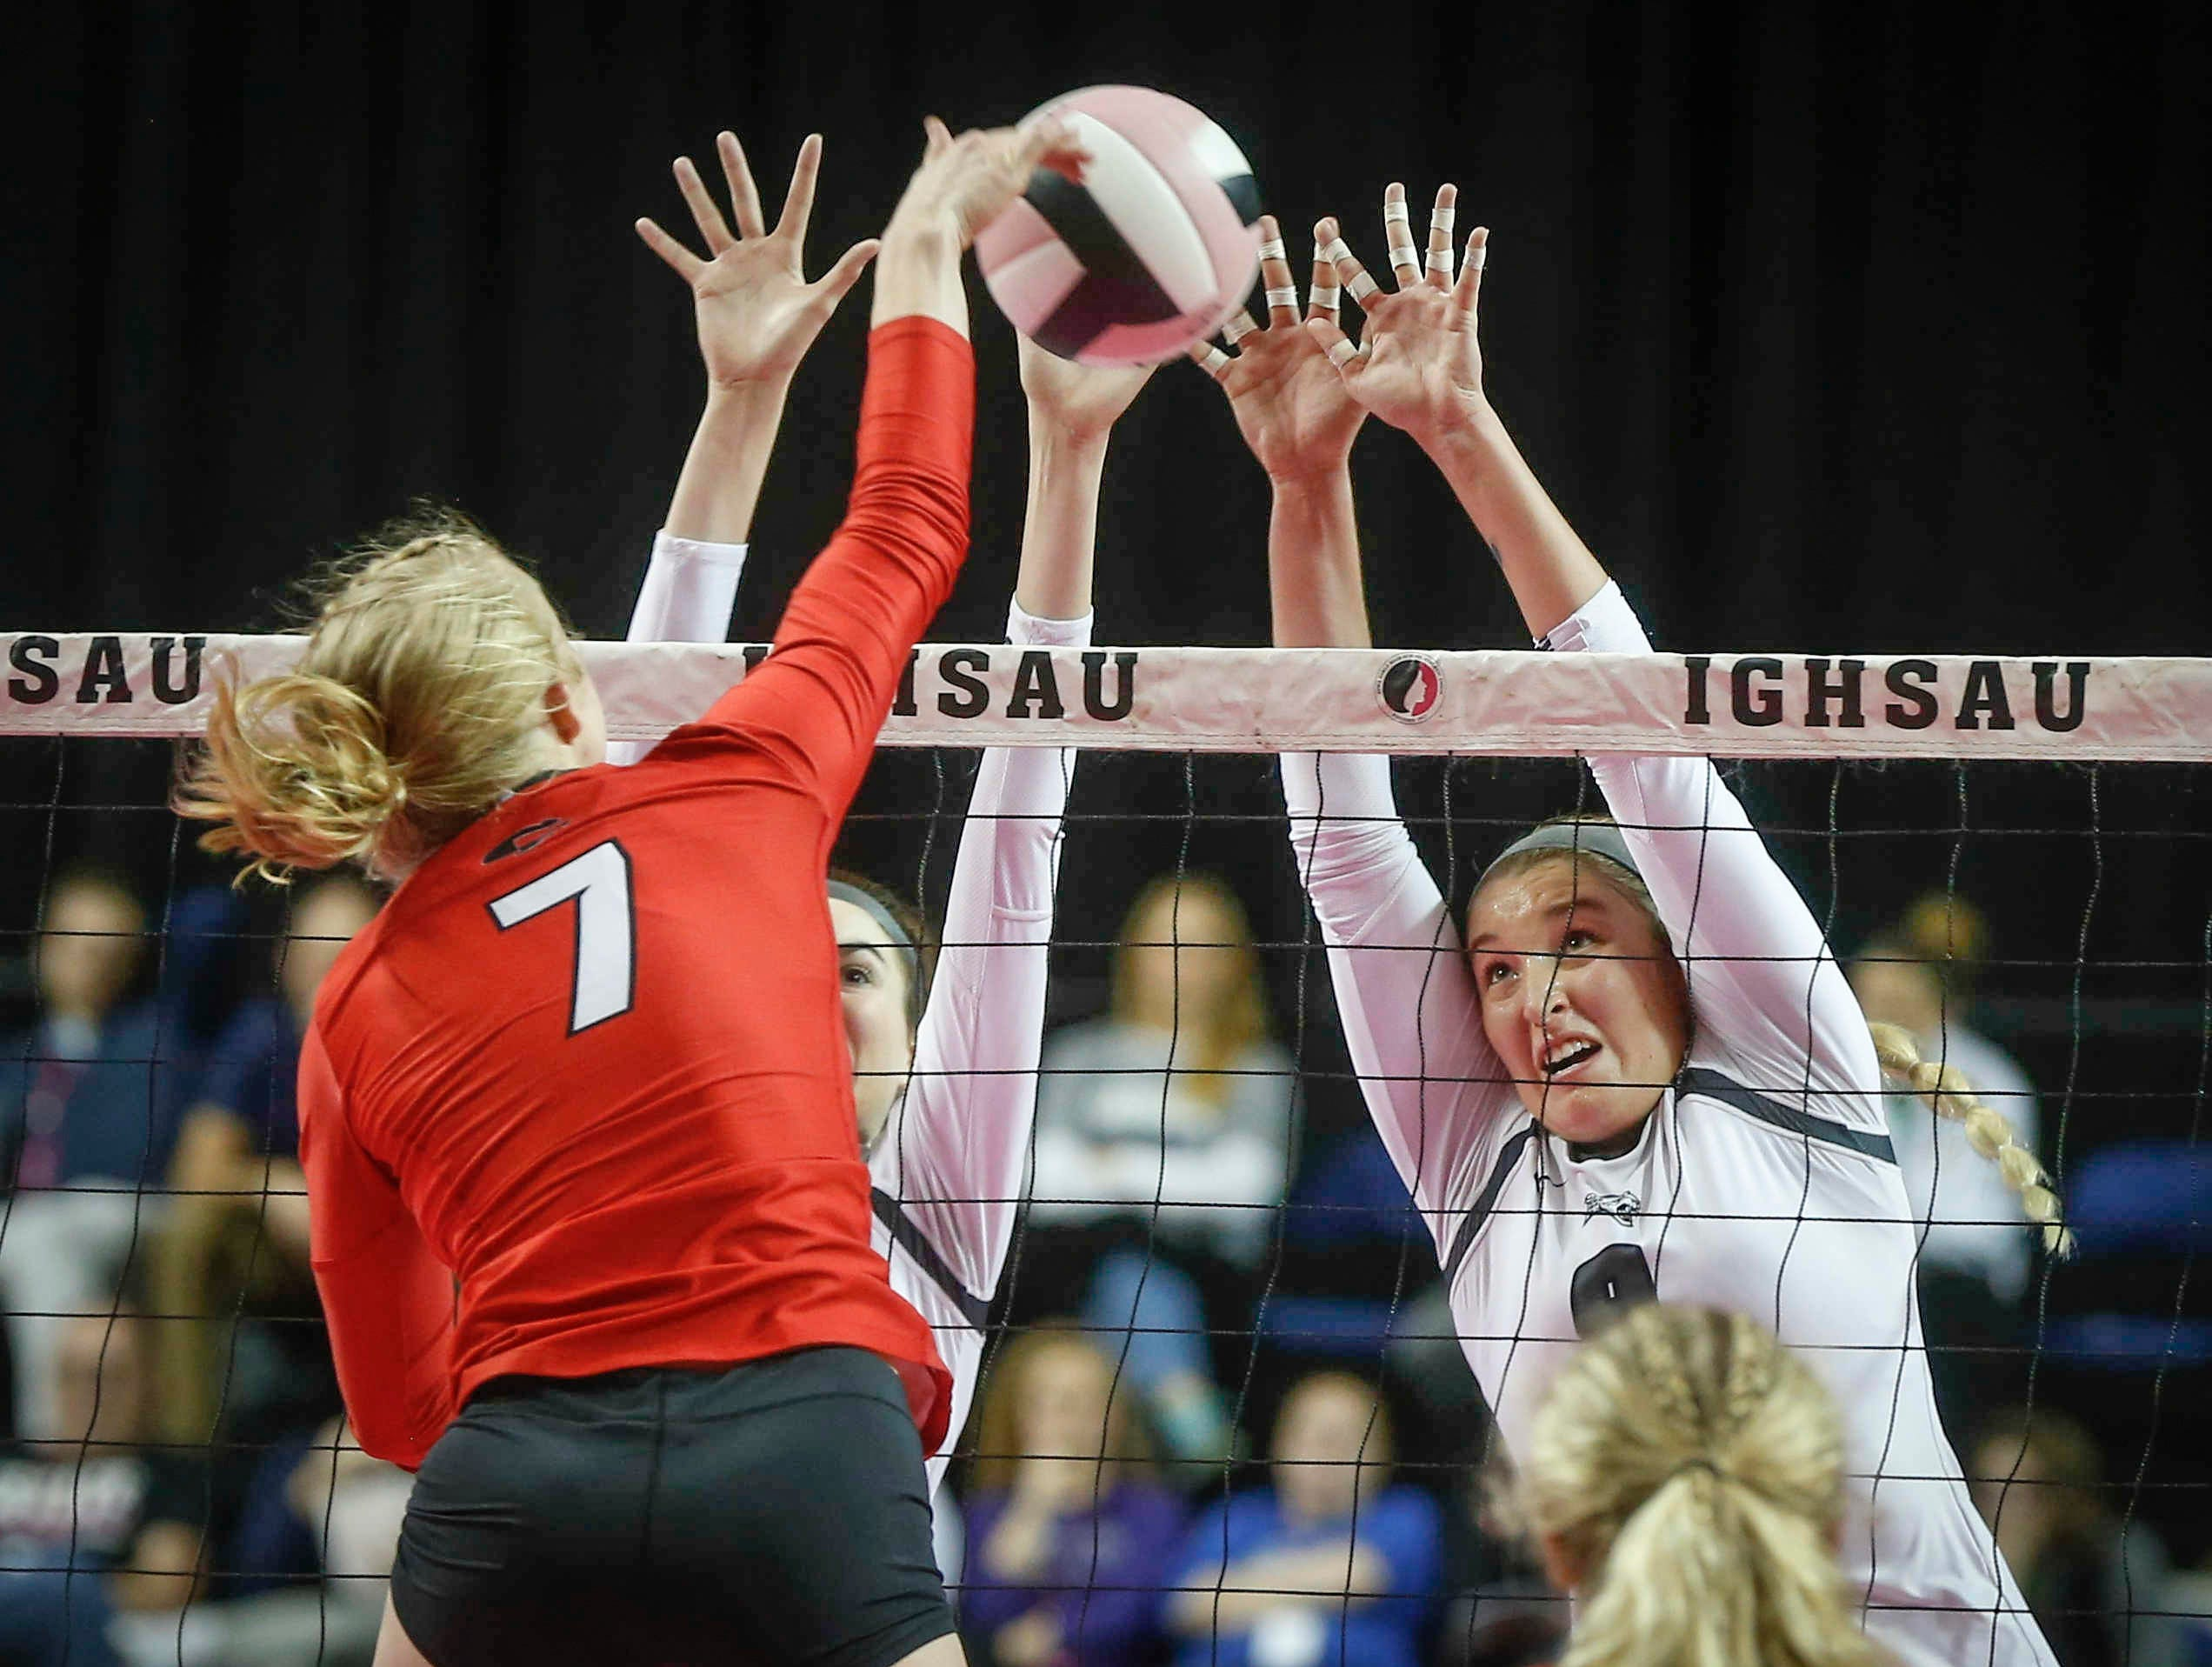 Ankeny Centennial's Kenna Sauer, right, blocks a shot at the net against Cedar Falls during the Class 5A state volleyball tournament championship game on Friday, Nov. 9, 2018, in Cedar Rapids.